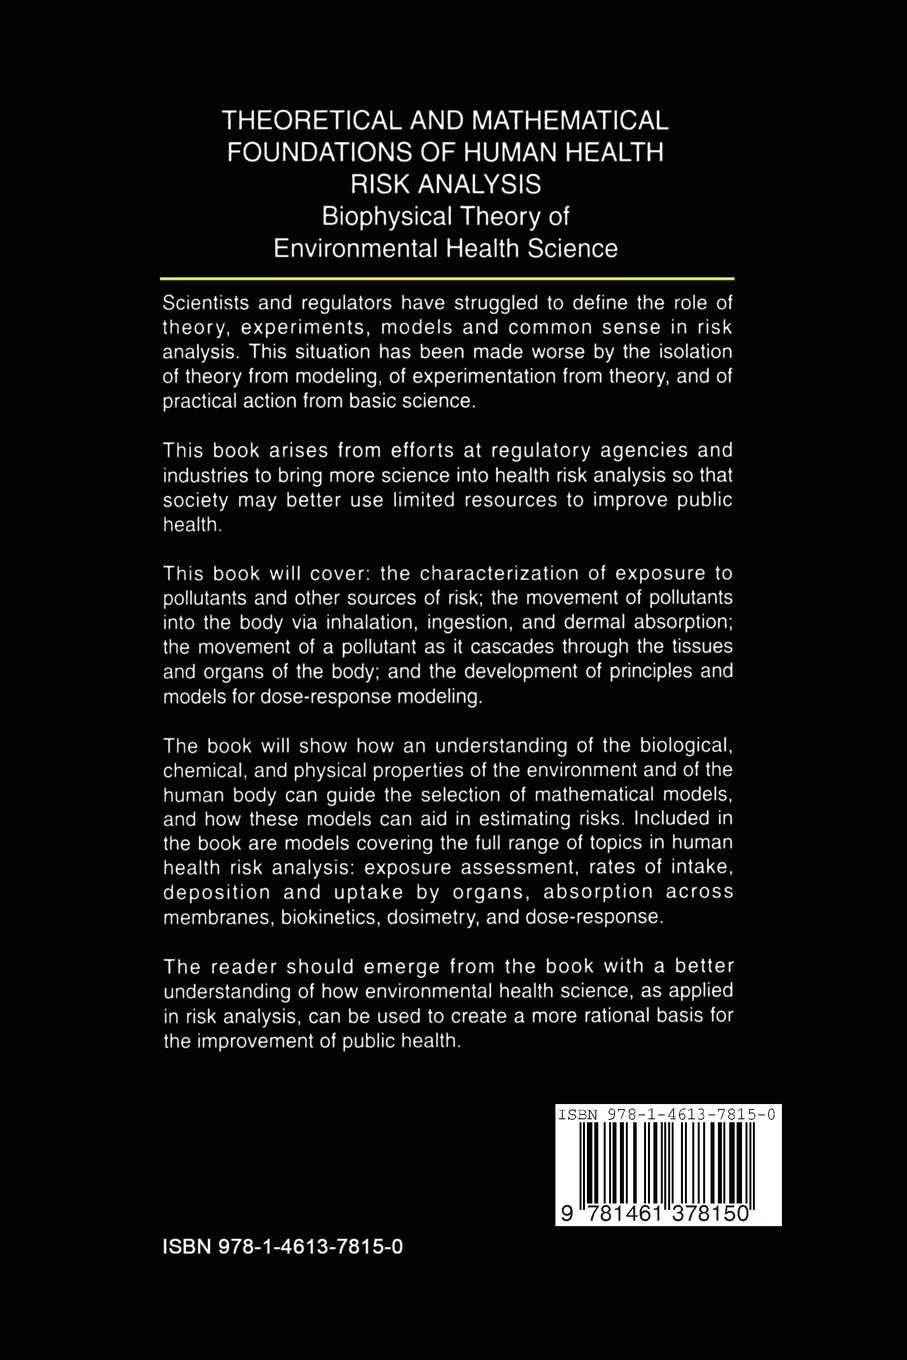 theoretical and mathematical foundations of human health risk analysis crawford brown douglas j